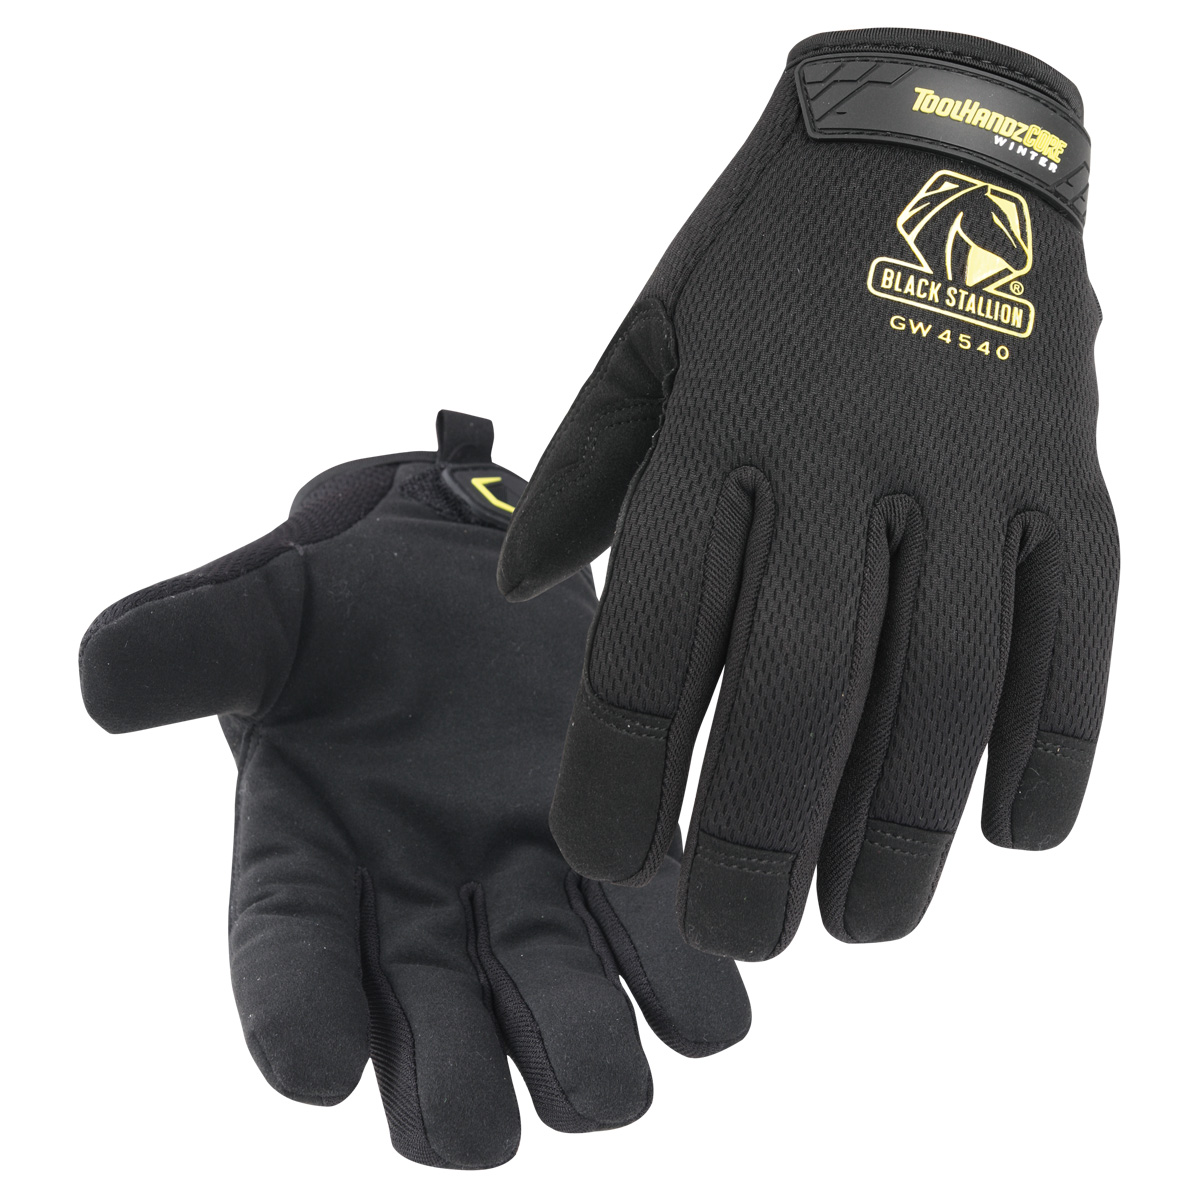 ToolHandz CORE SLP Multiuse Mech. Glove Winter #GW4540-BK